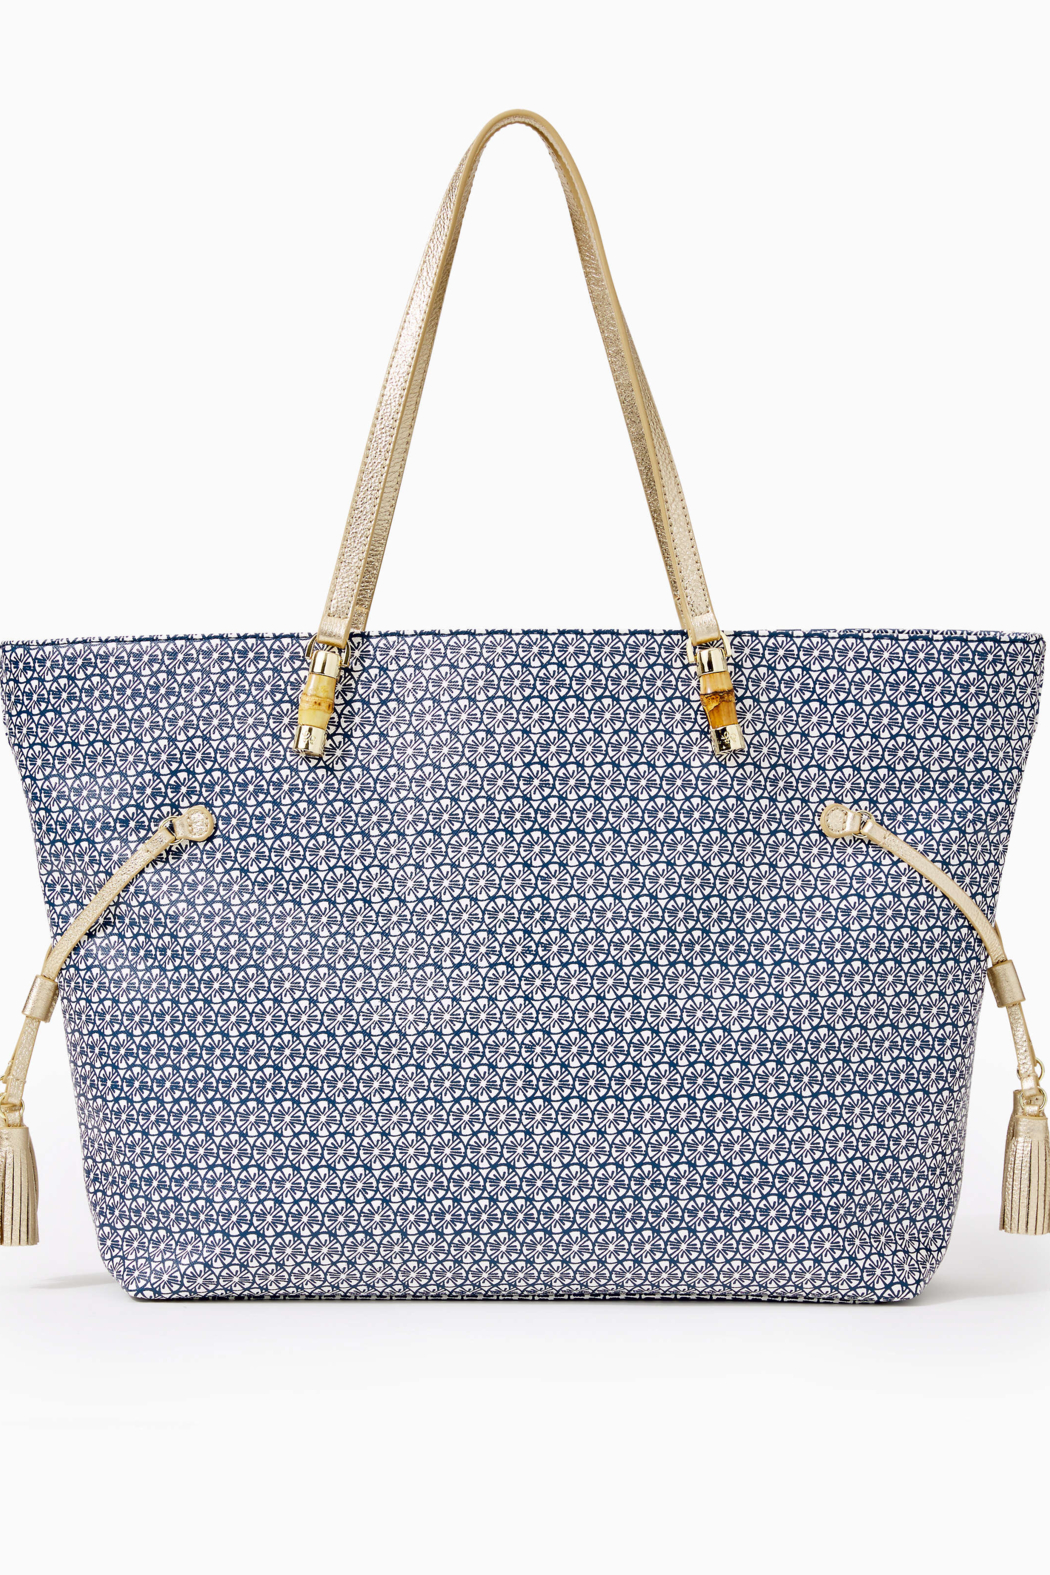 Lilly Pulitzer  Mizner Tote - Front Full Image